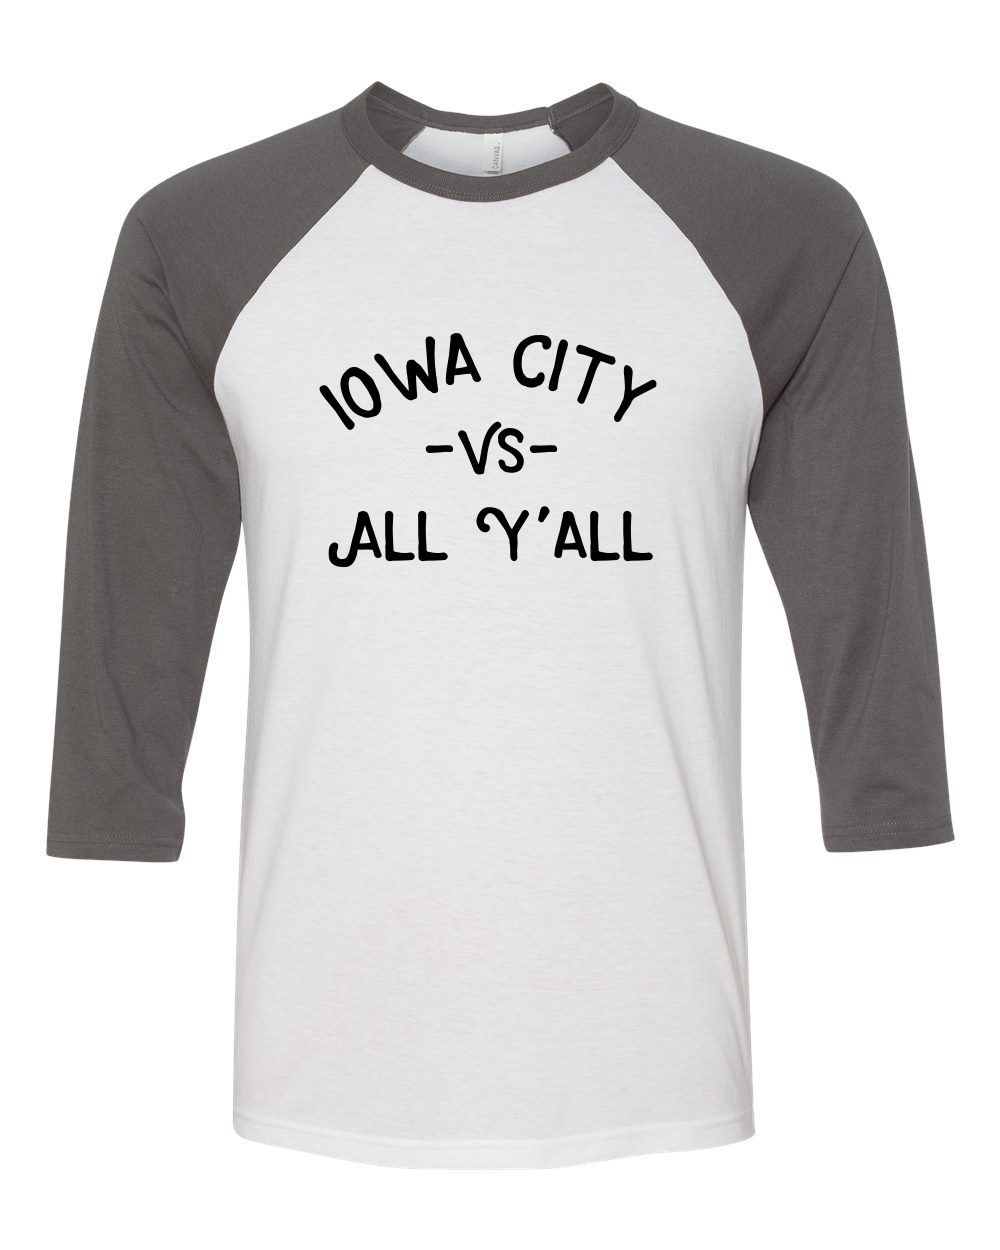 Iowa City -VS- All Yall Baseball Te - orangeshine.com